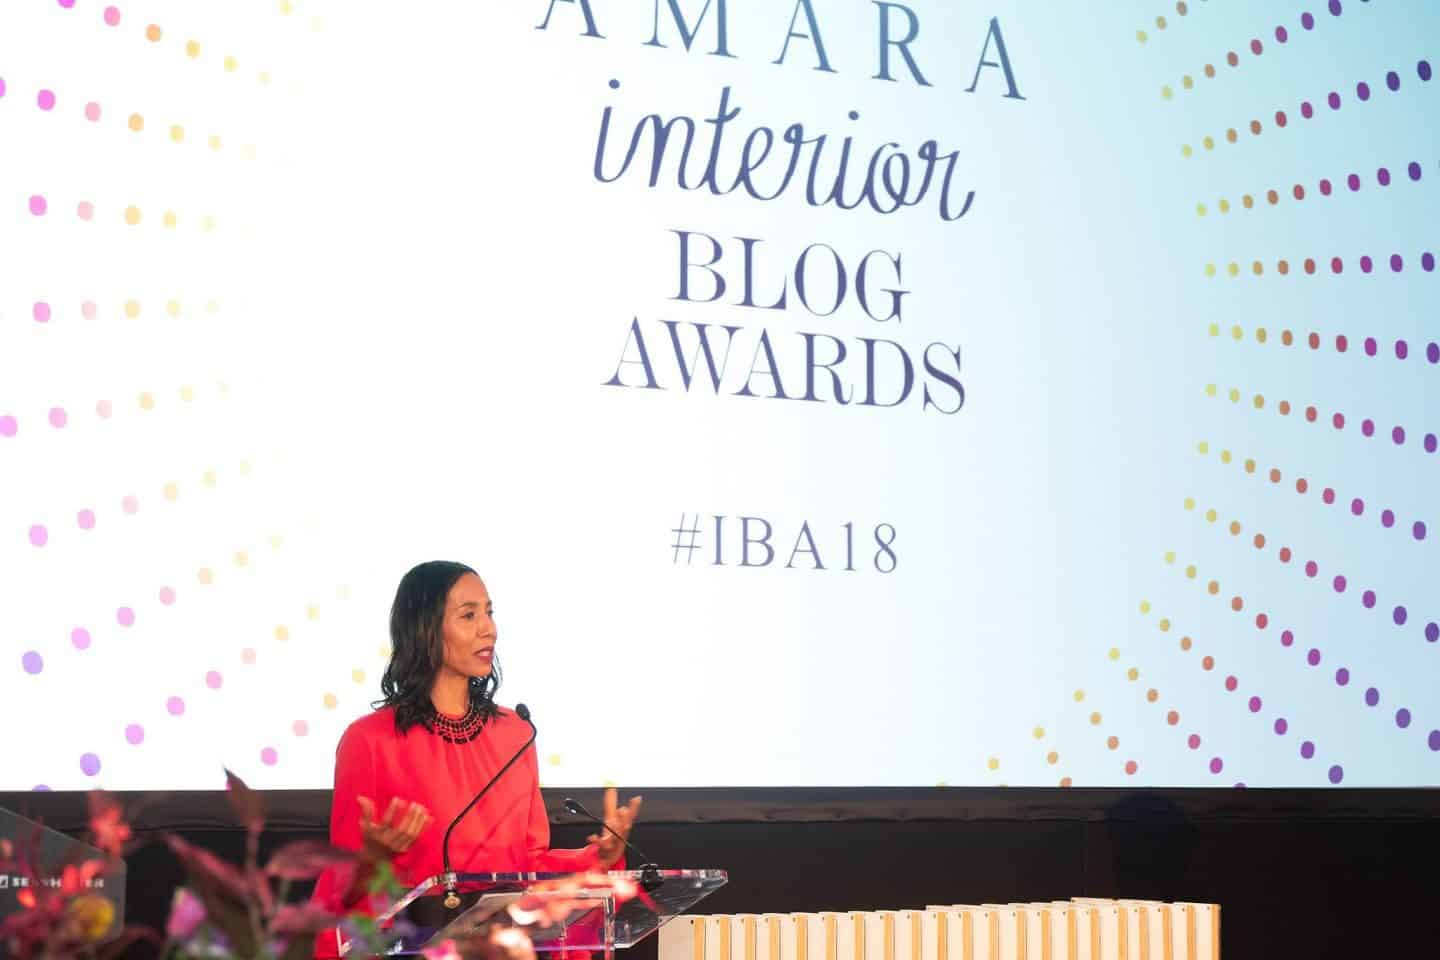 Amara Interior Blog Awards 2018 at One Marylebone